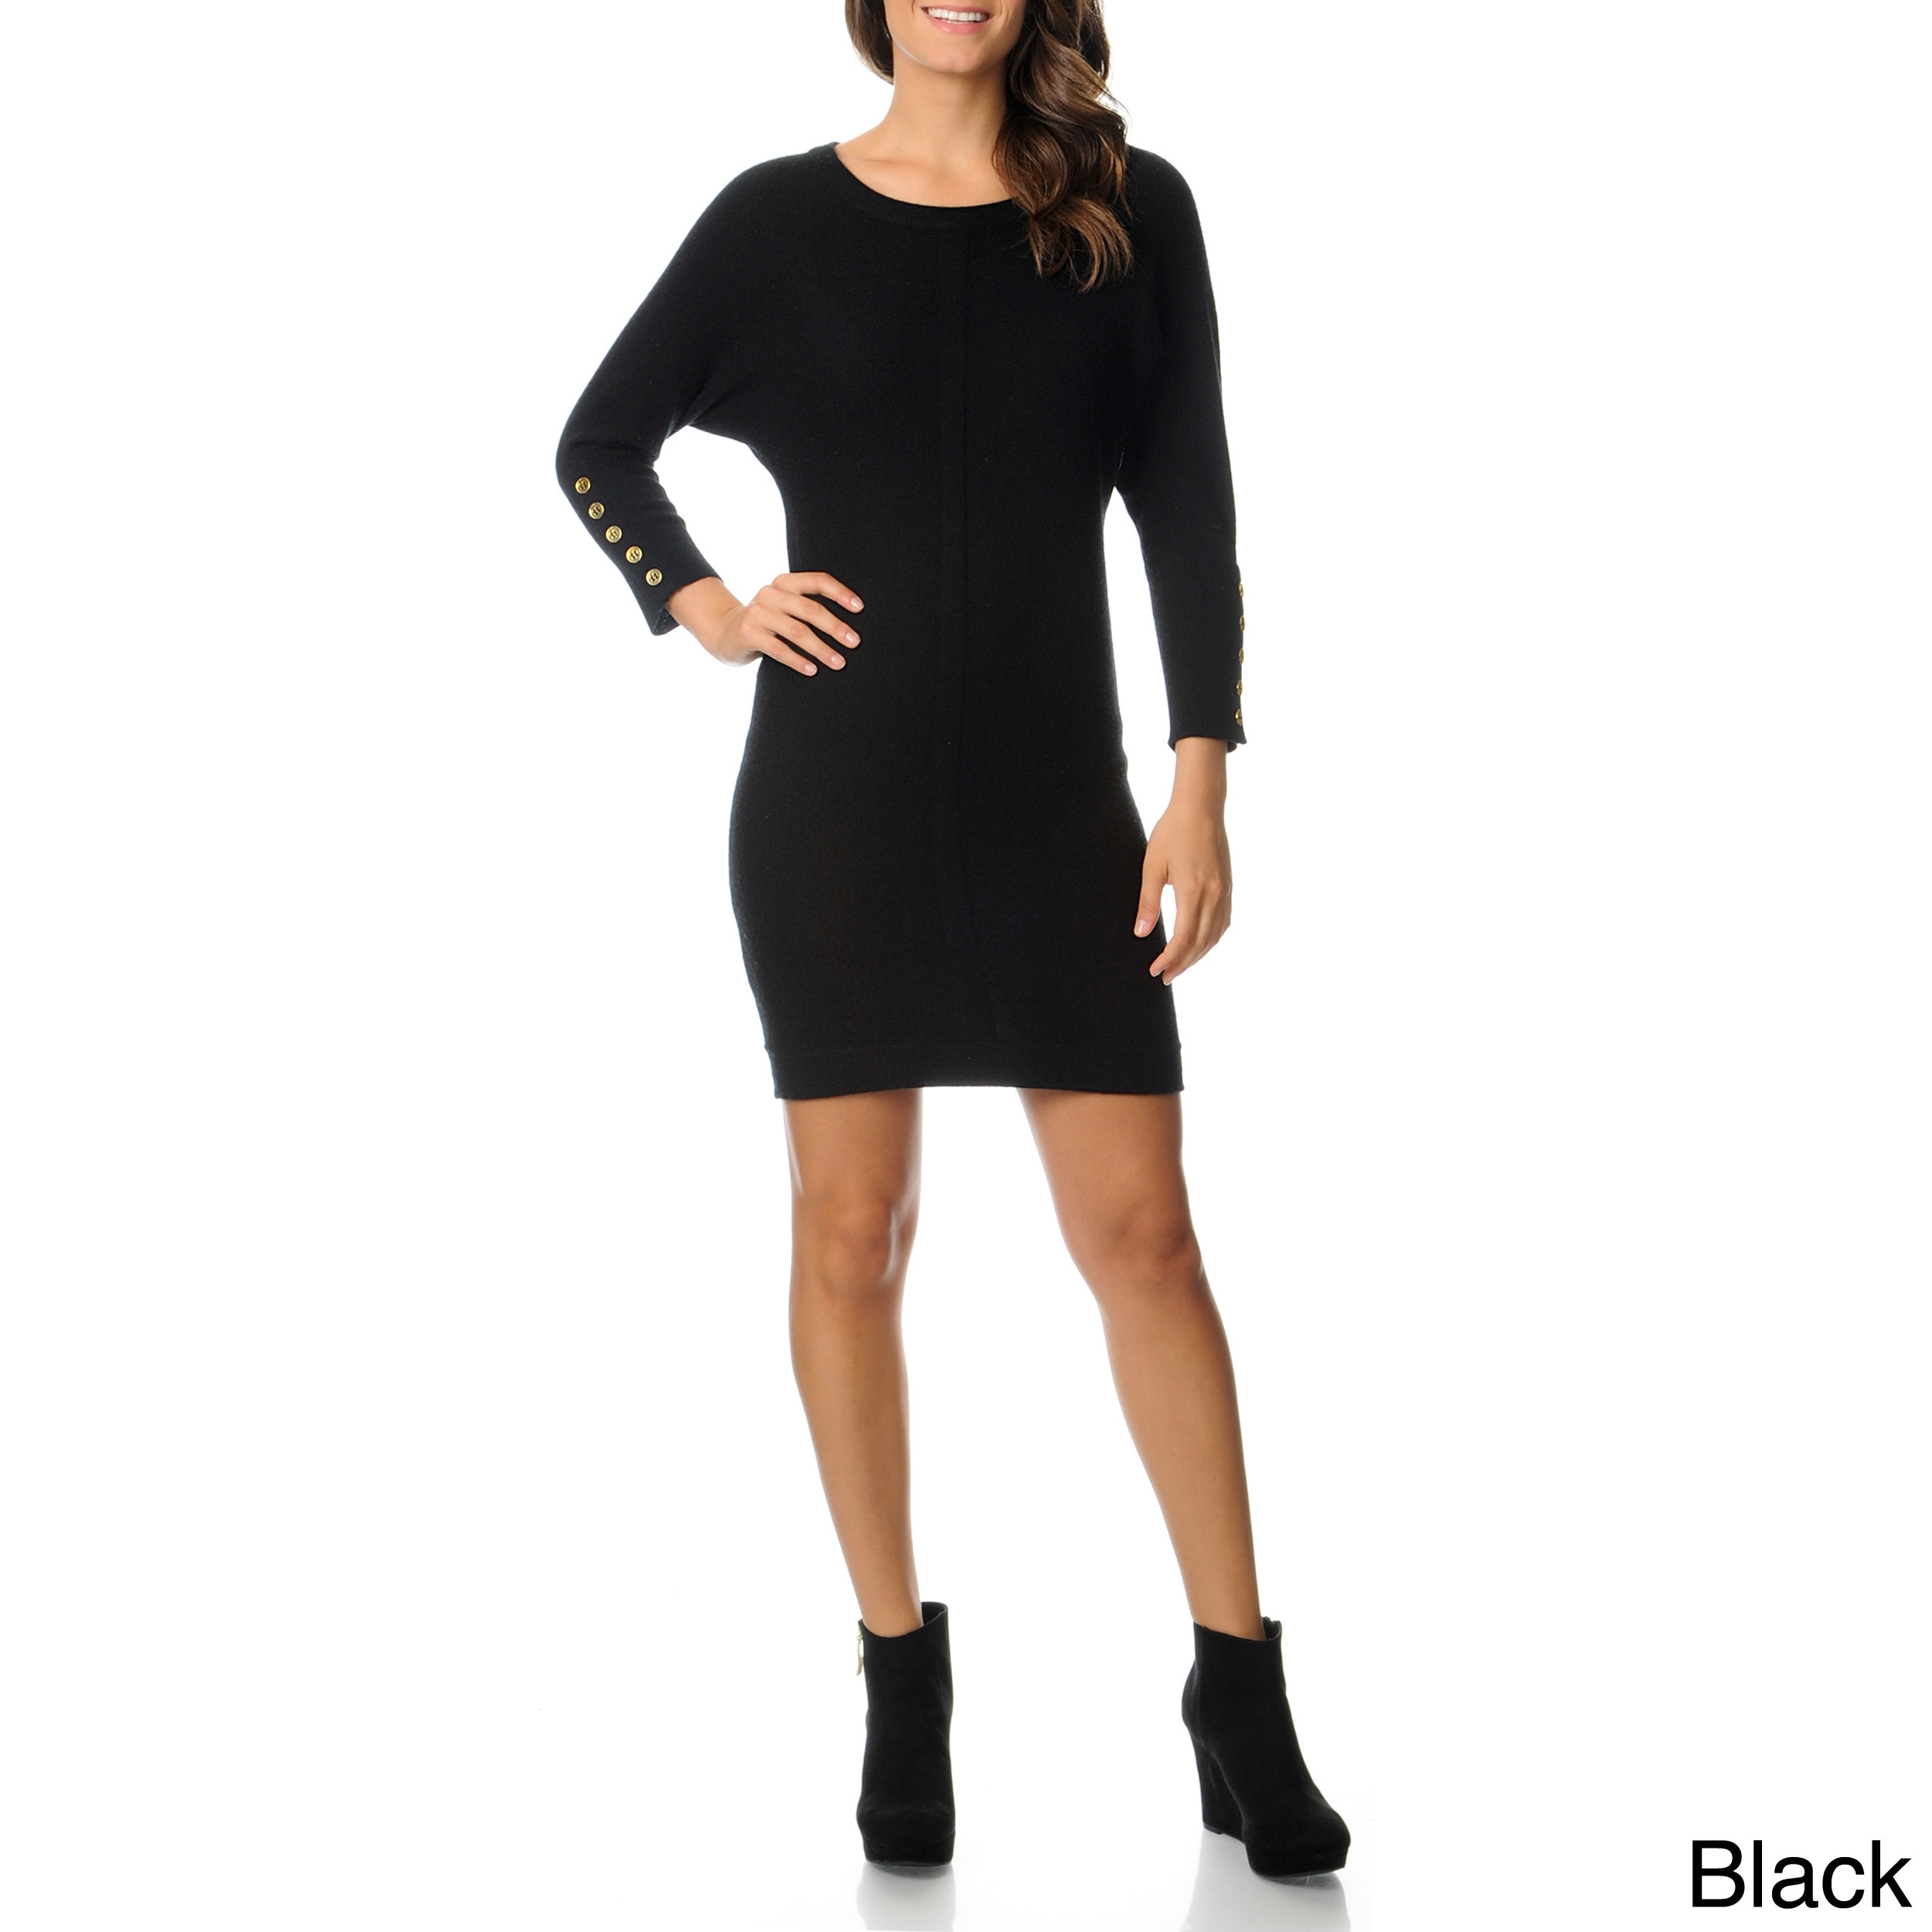 Republic Clothing Ply Cashmere Womens Boat Neck Sweater Dress Black Size XS (2  3)